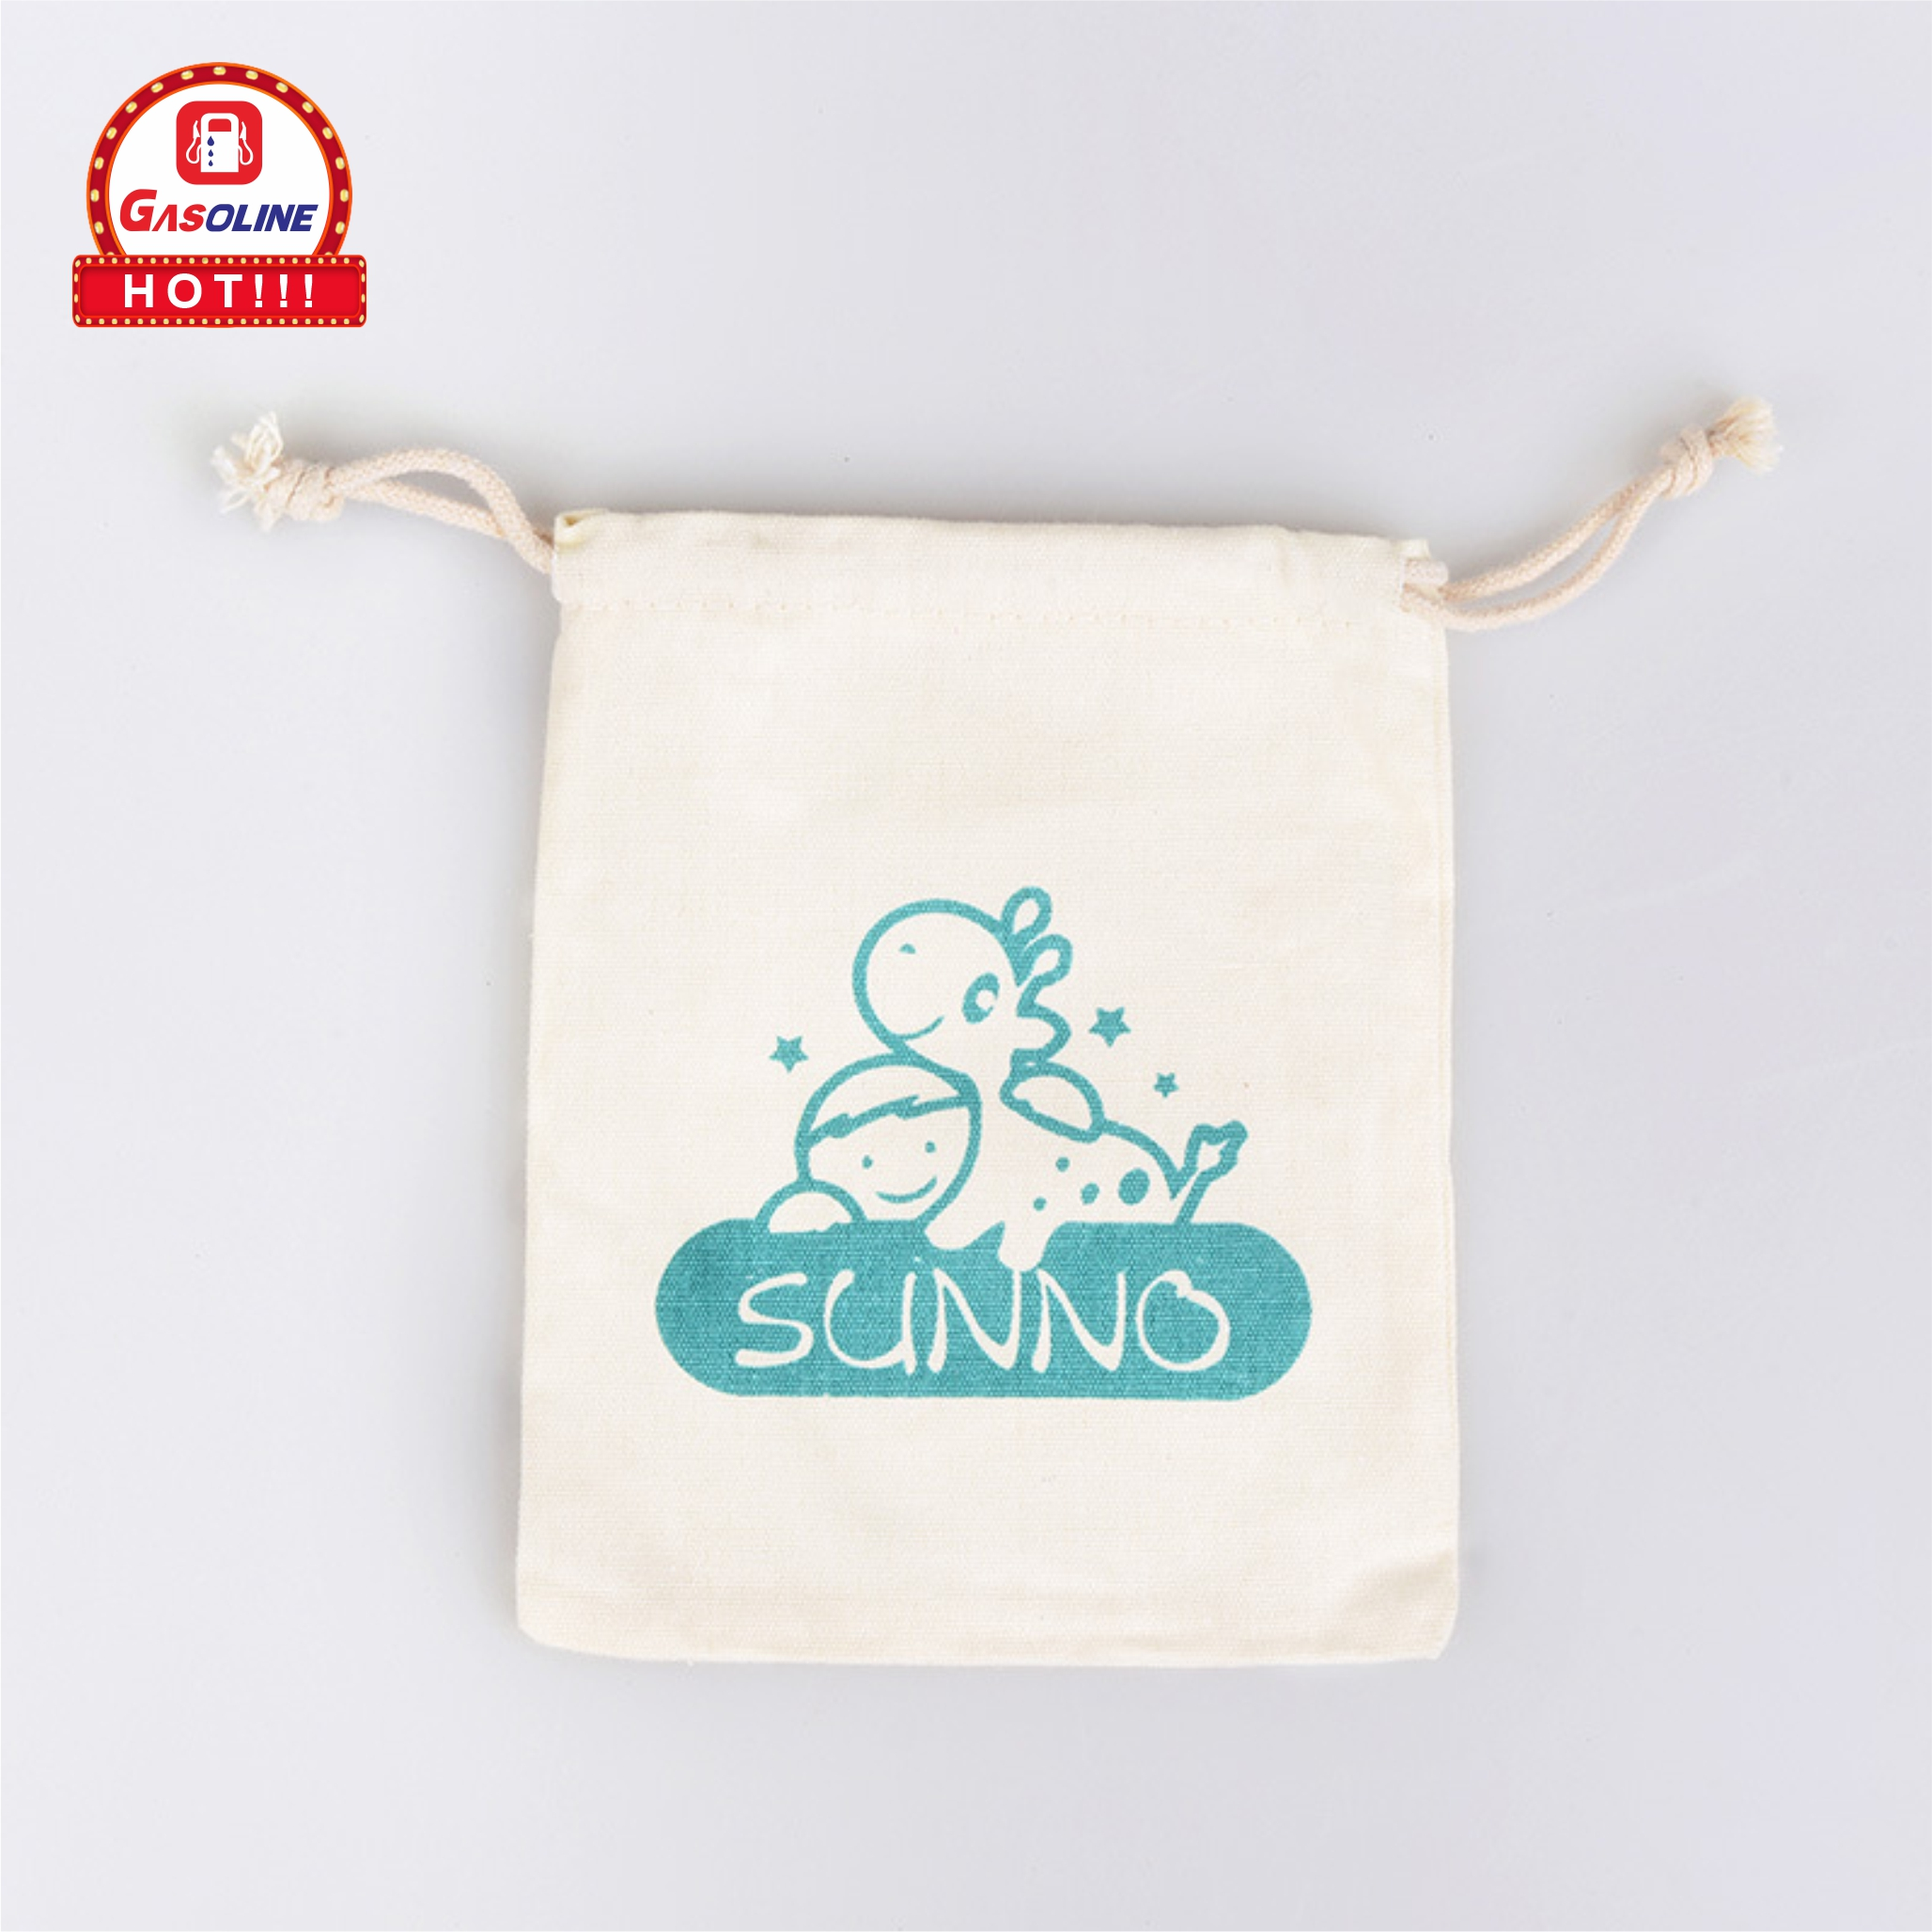 Durable high quality custom logo printed organic pure cotton canvas pouch jewelry storage drawstring bag jewelry pouch